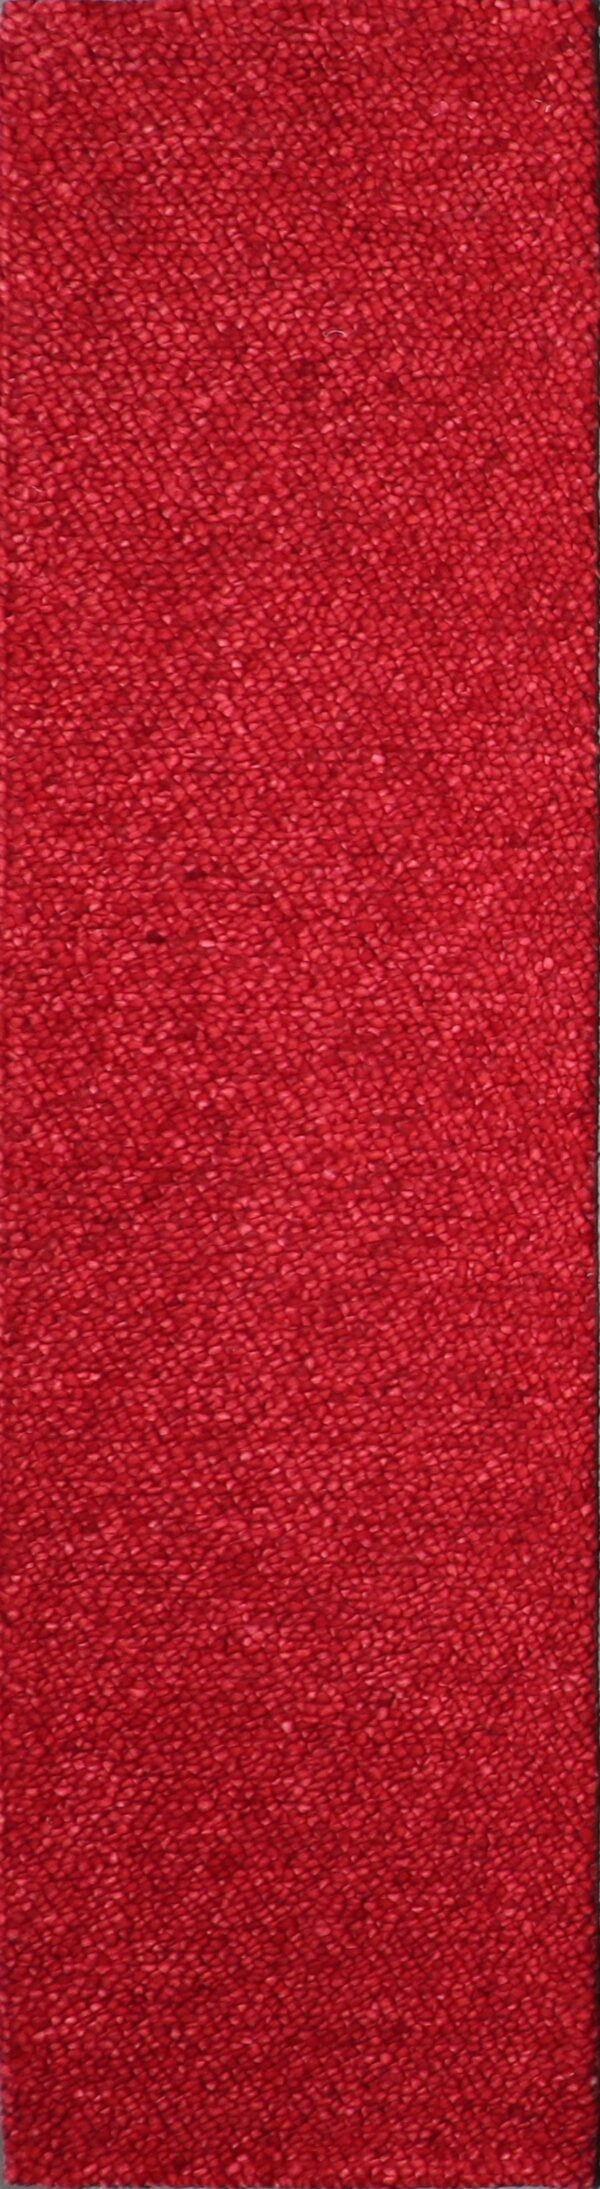 """2'5""""x9'4"""" Contemporary Loop Red Wool Hand-Tufted Rug - Direct Rug Import 